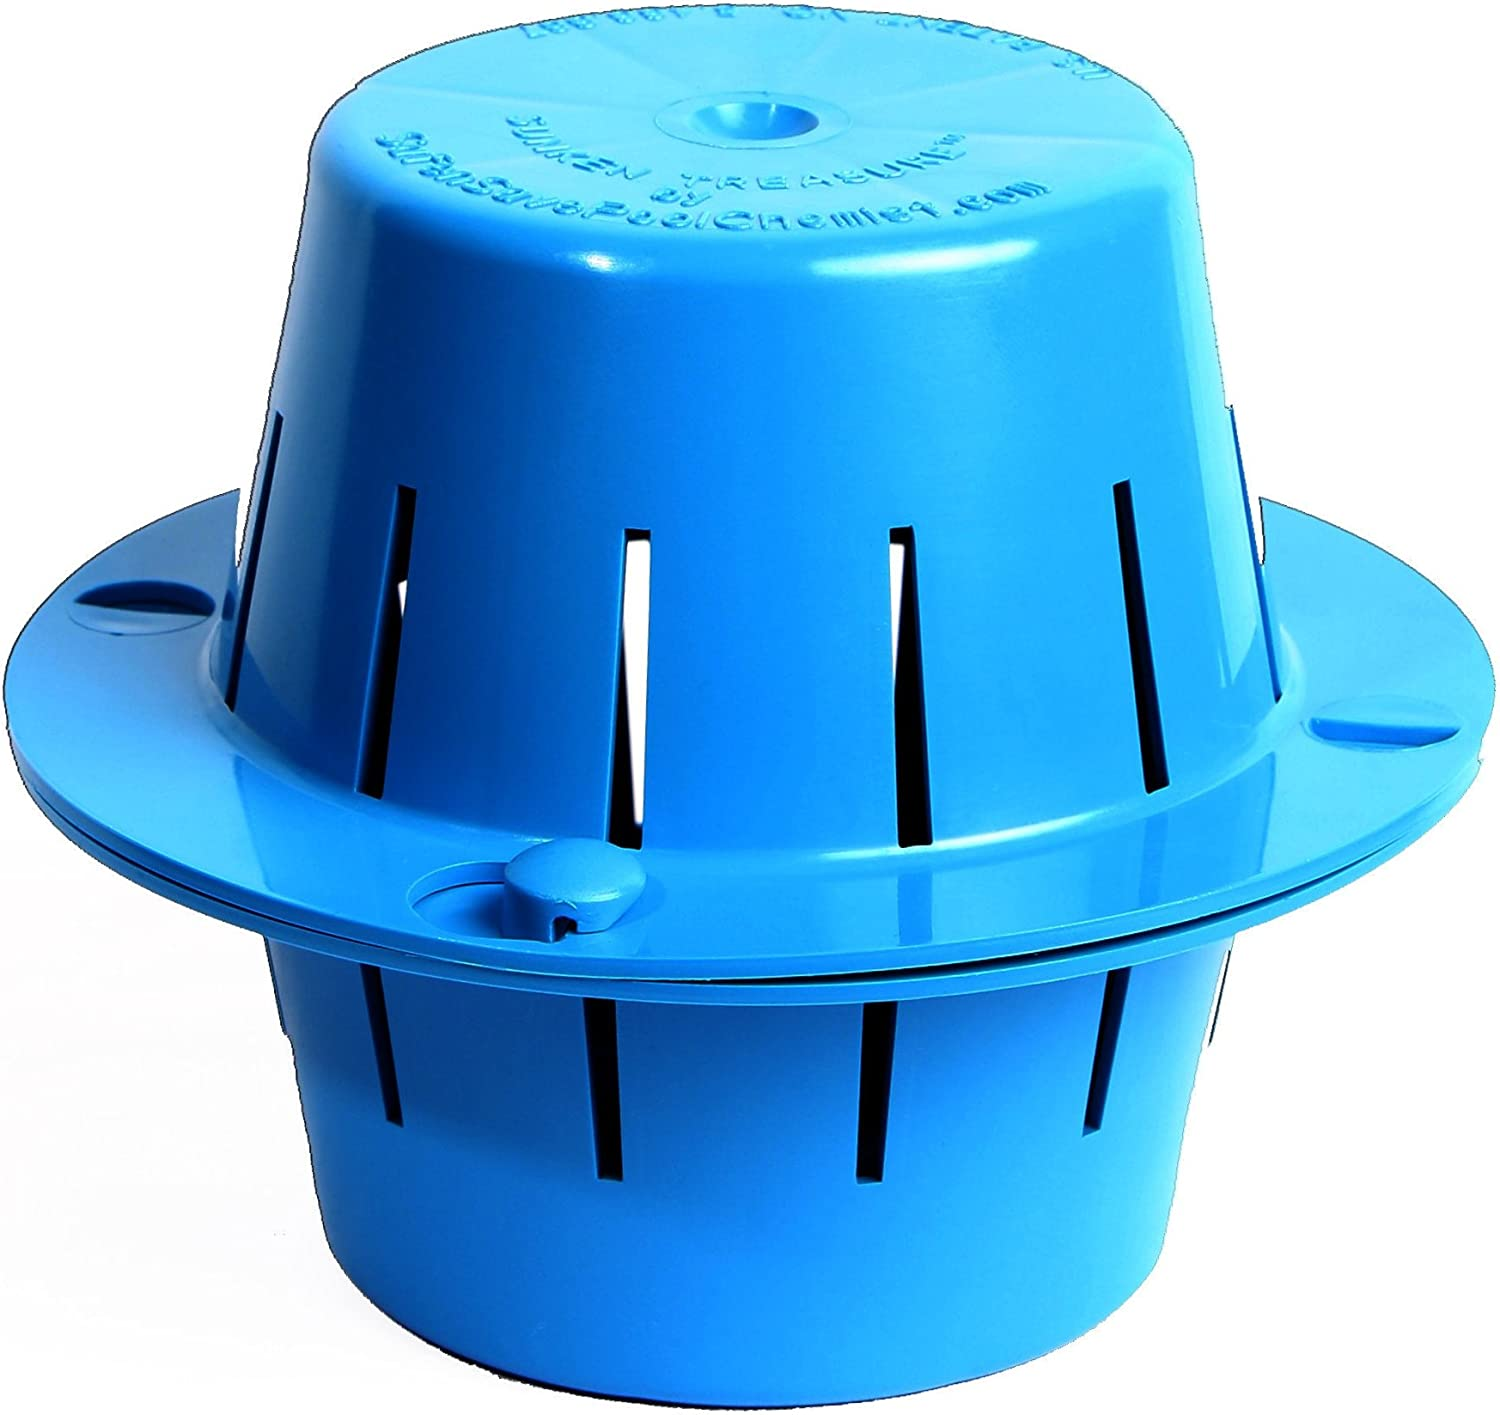 Sinking Popular brand in the world Floating Chlorine Dispenser Sinks Safety and trust Uses LESS